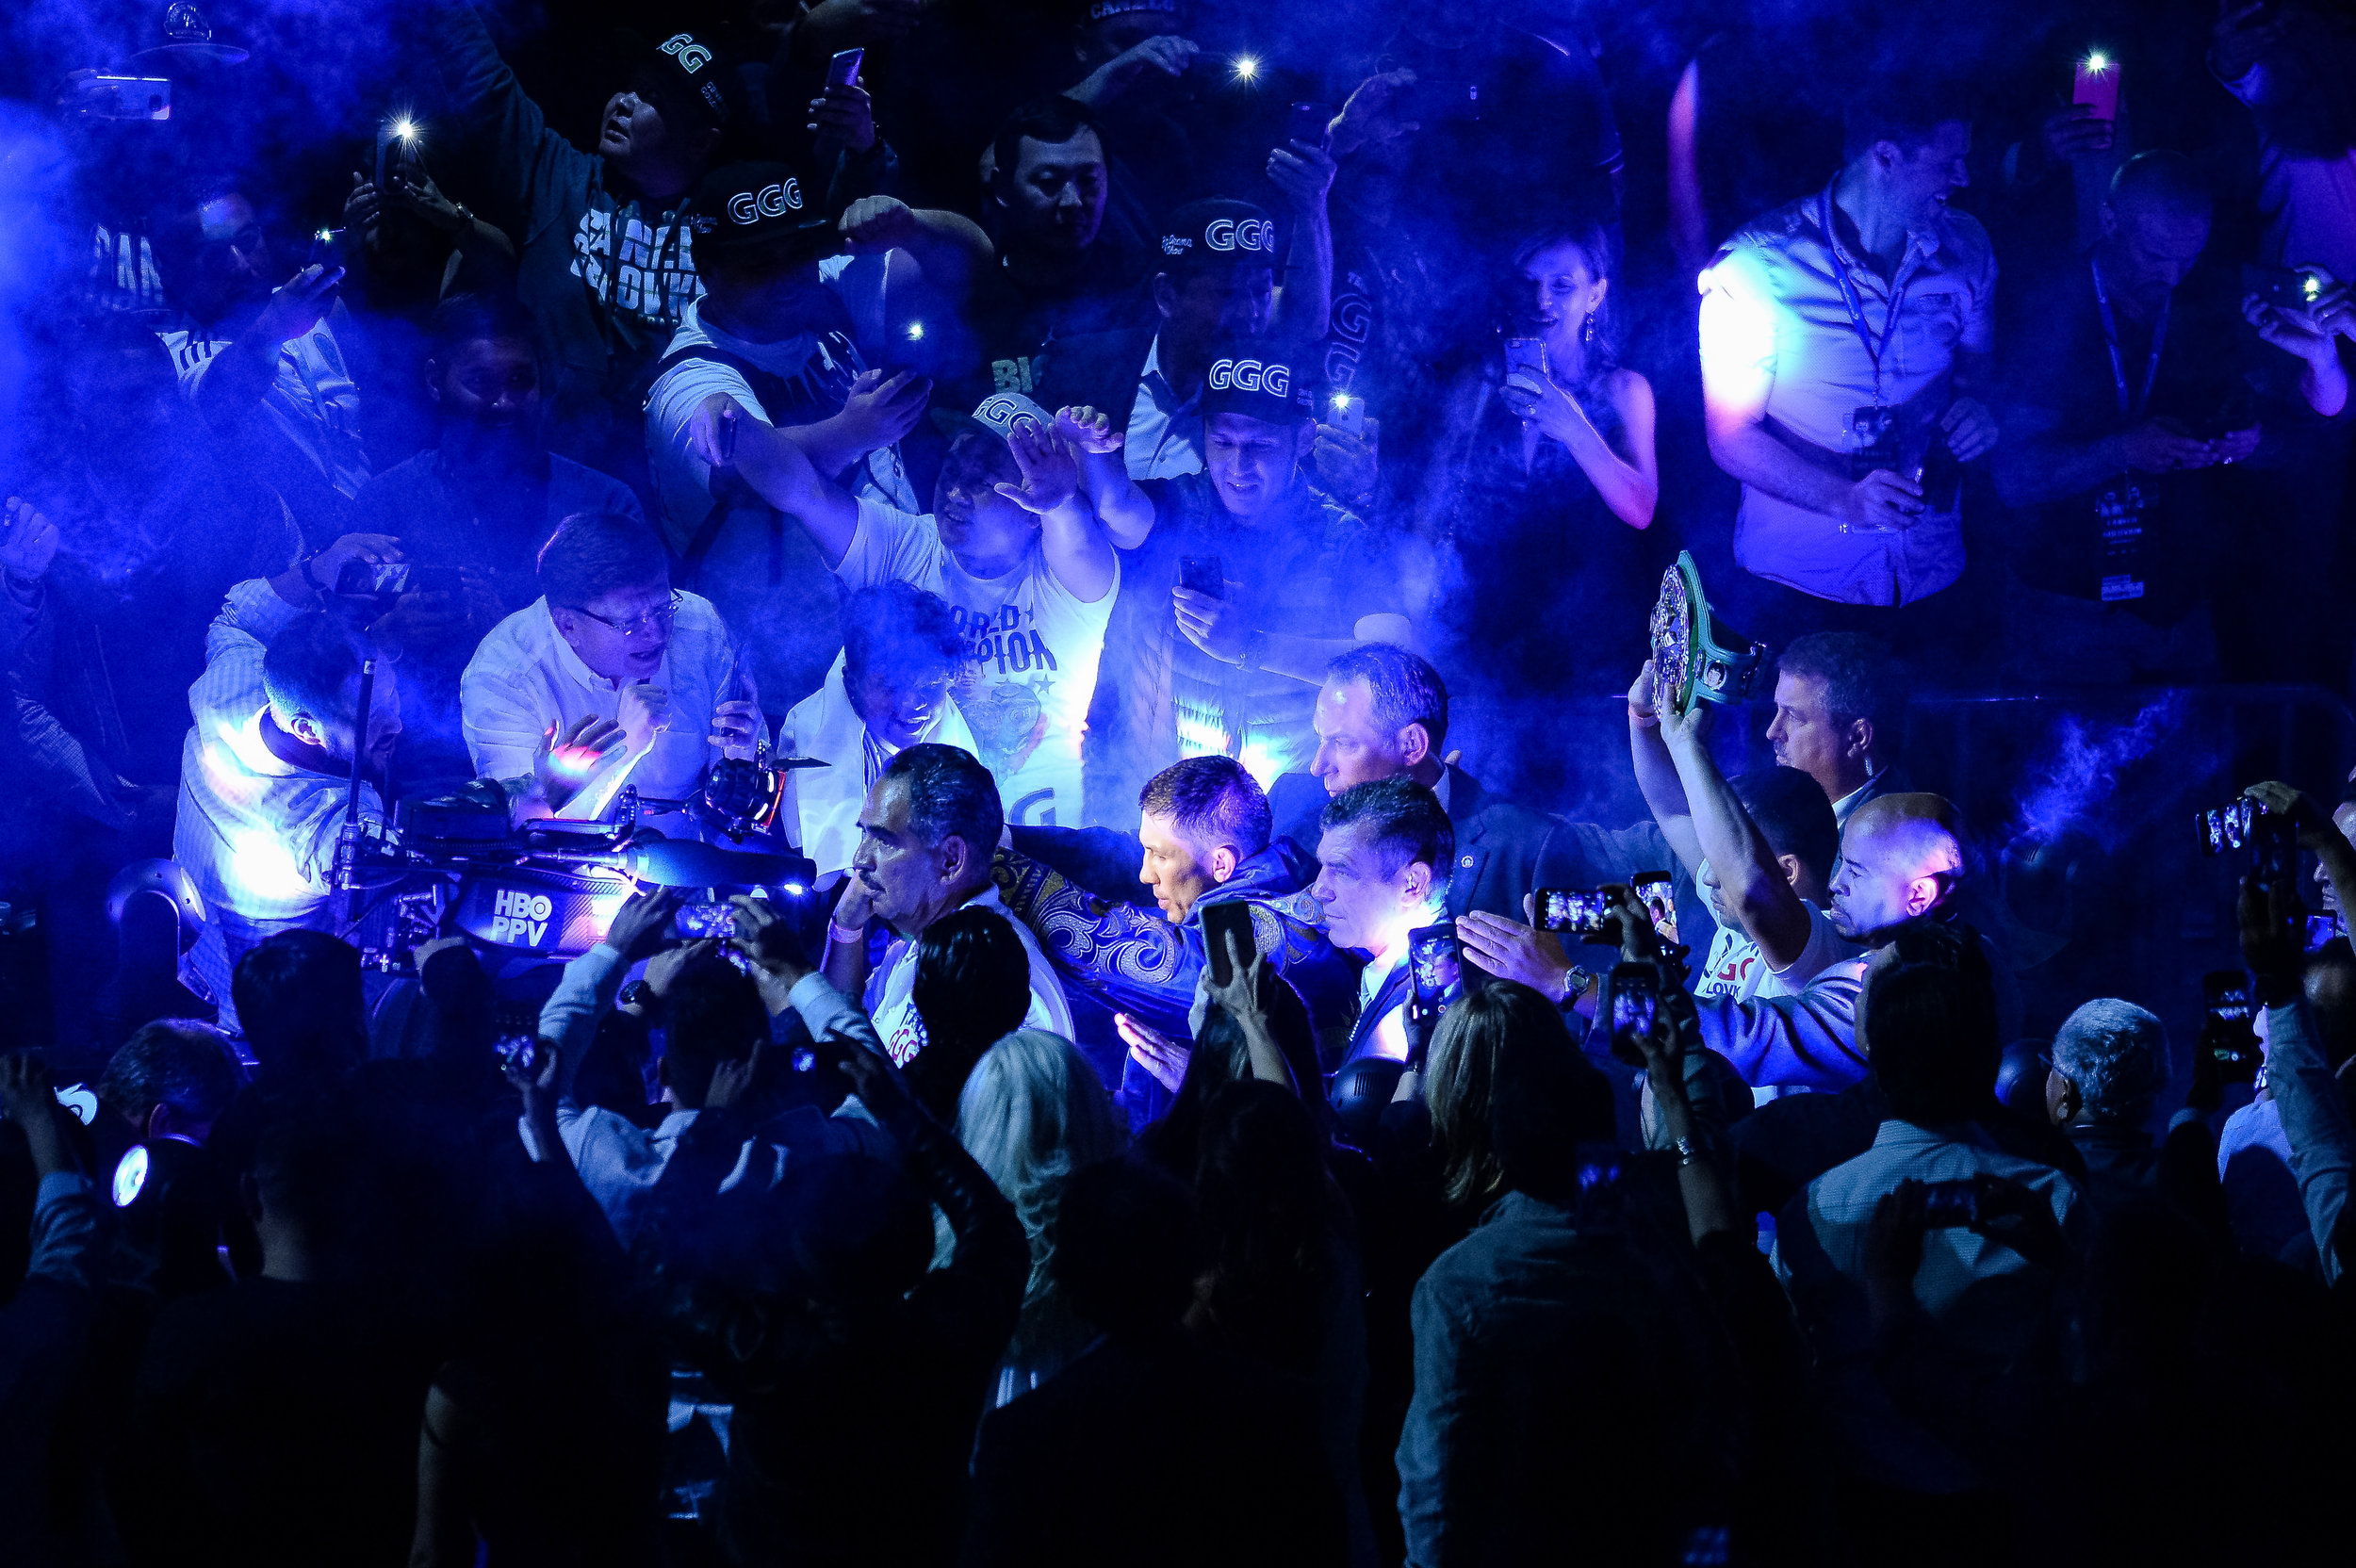 The entrance for Gennady Golovkin for his fight with Canelo Alvarez. I love the fans with their GGG hats, the phones recording the entrance, and how the light makes it look like he is parting a sea of fans.